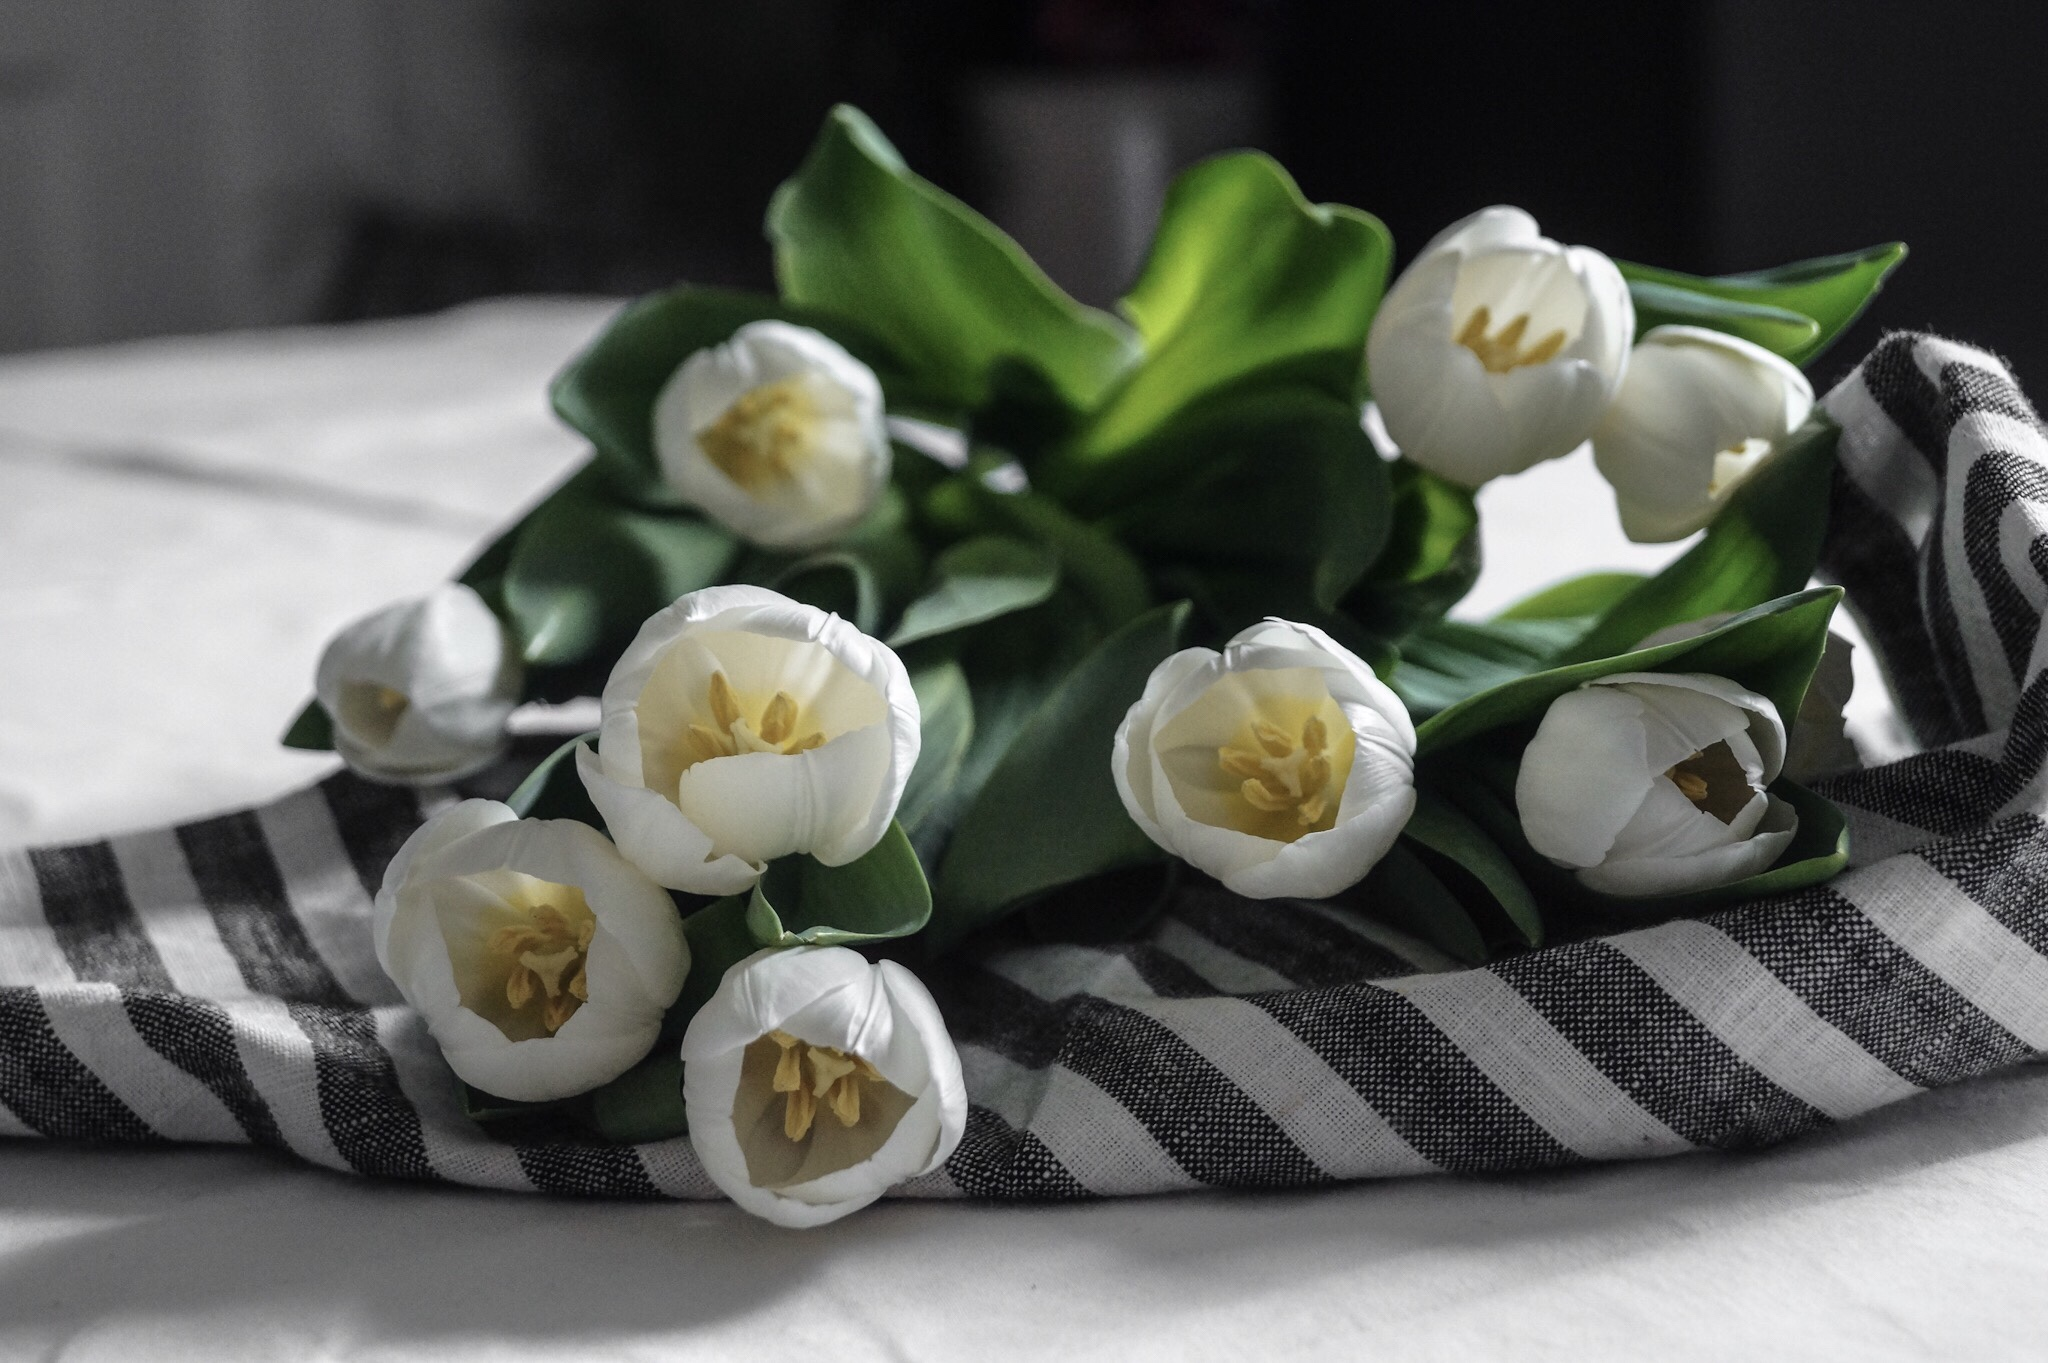 white tulips for spring, tulips, tulip arrangement, flower arrangement simple, flower arrangement for table